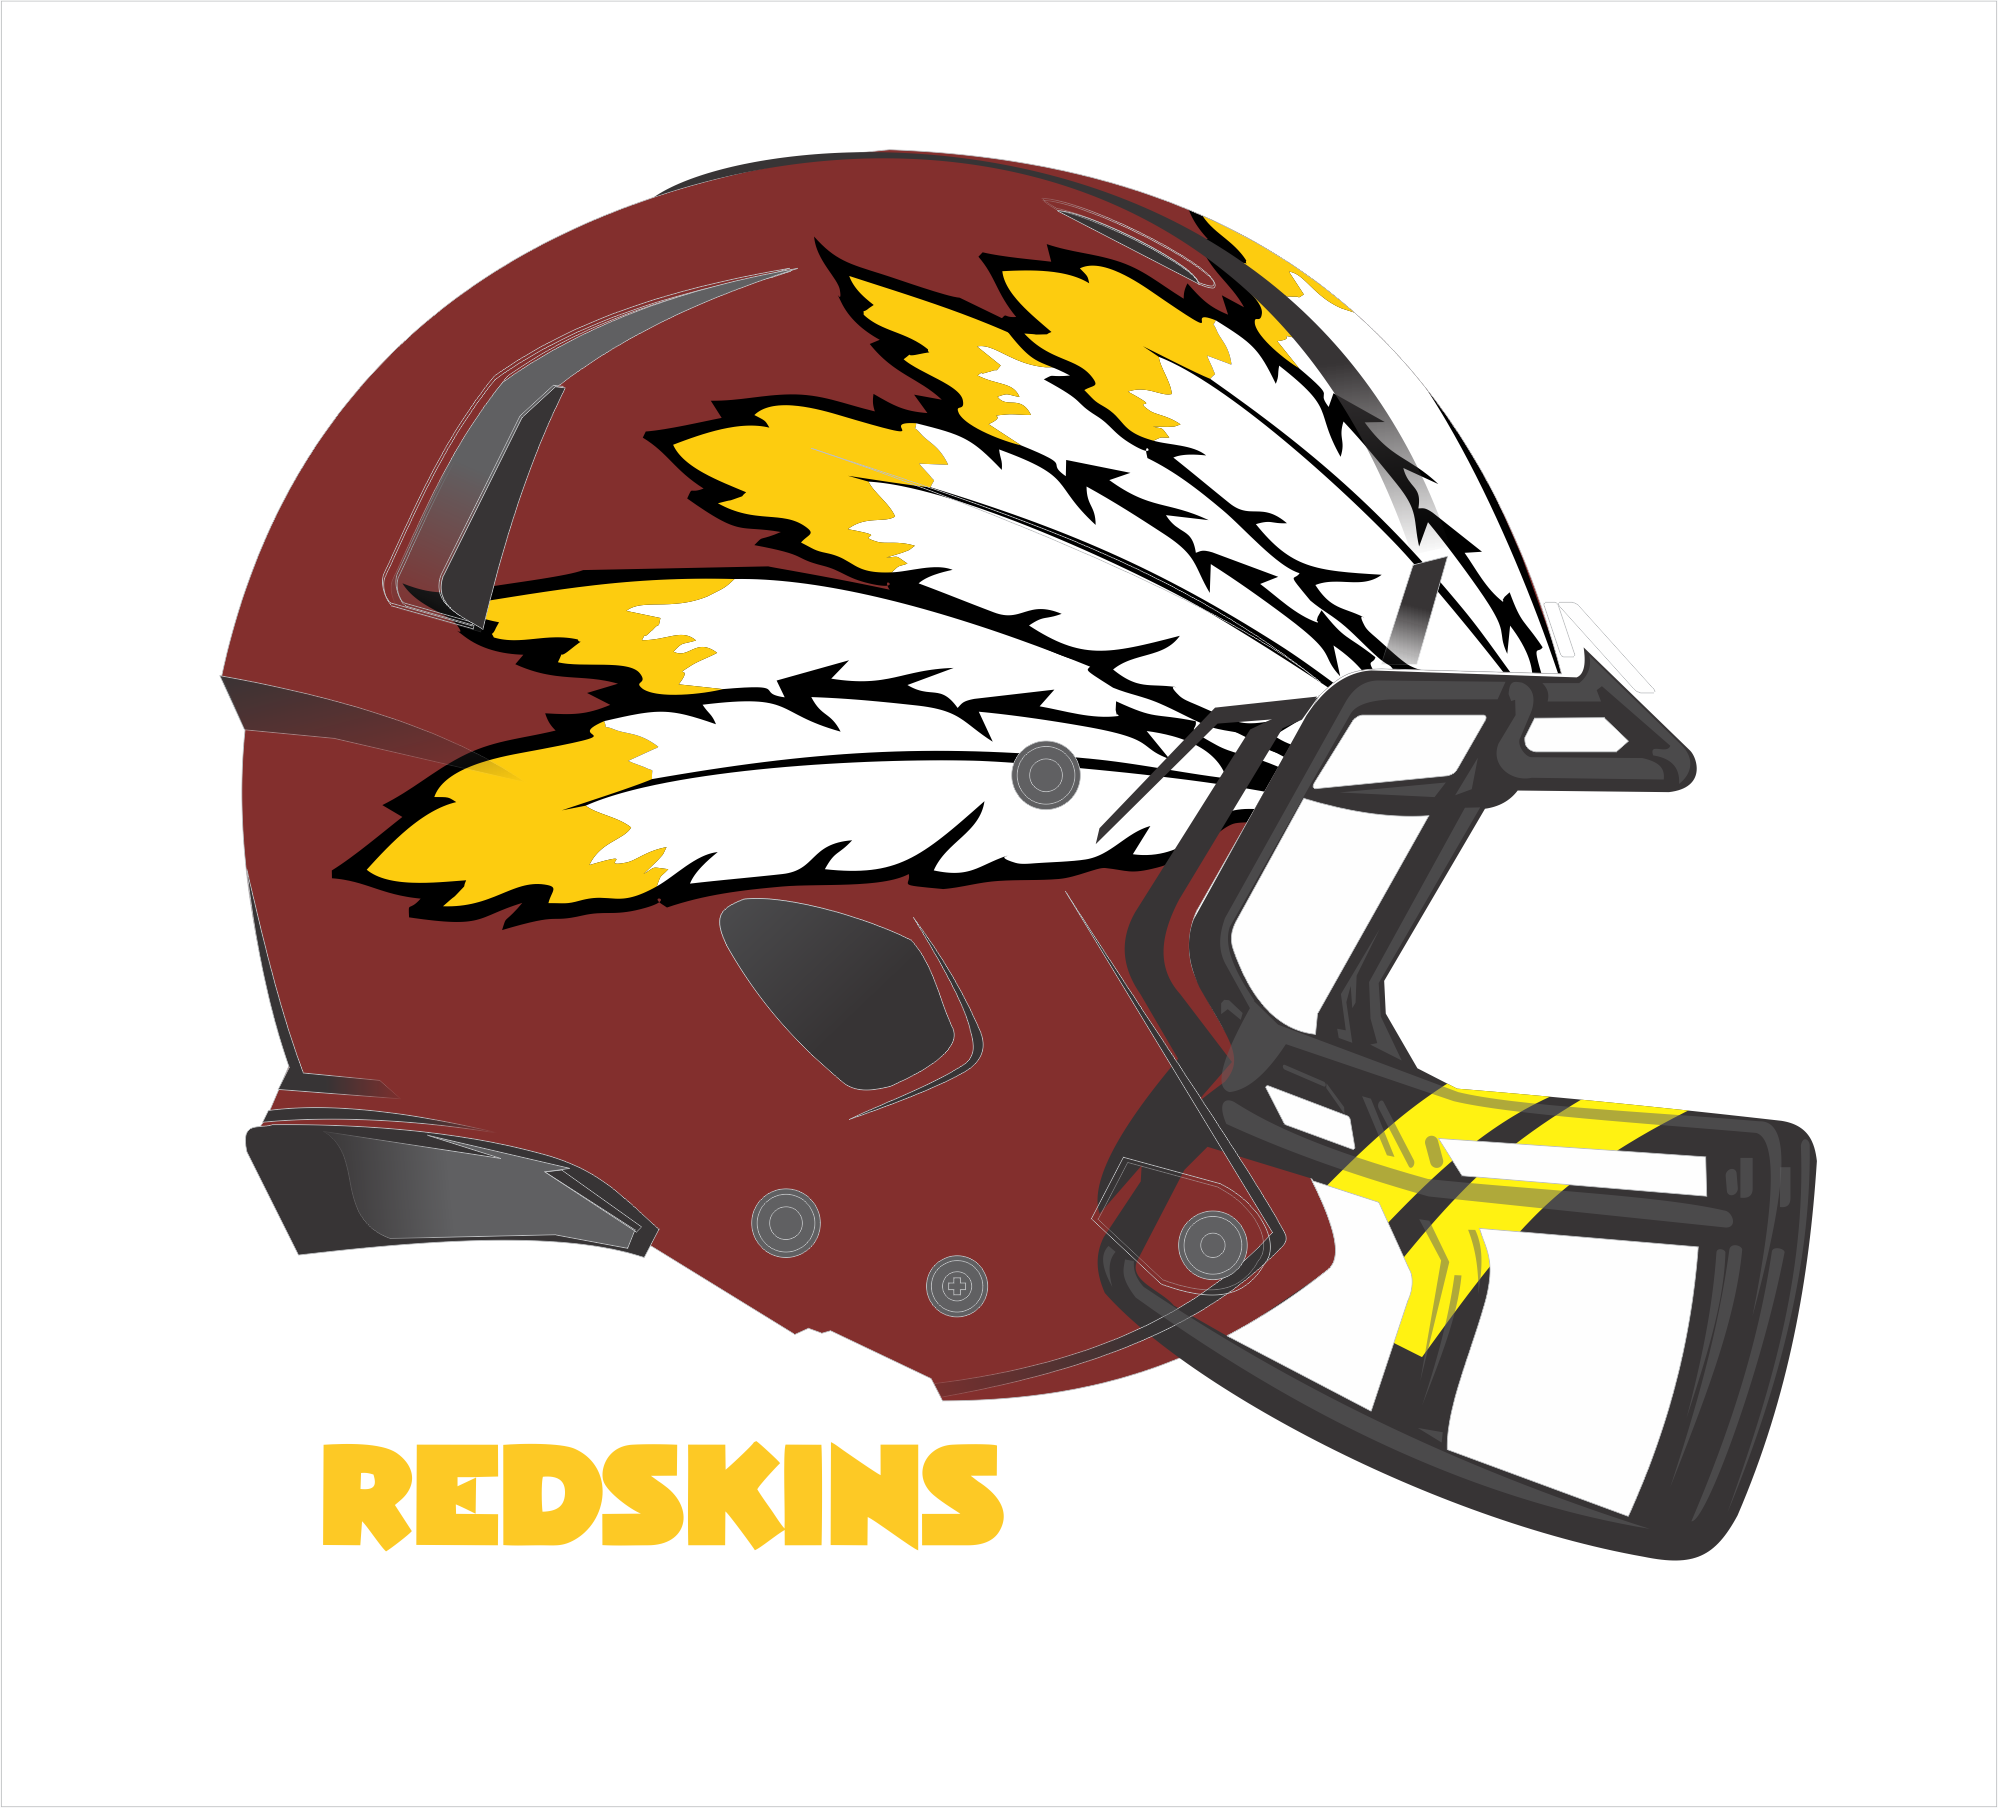 Washington Redskins Helmet Design Redskins logo